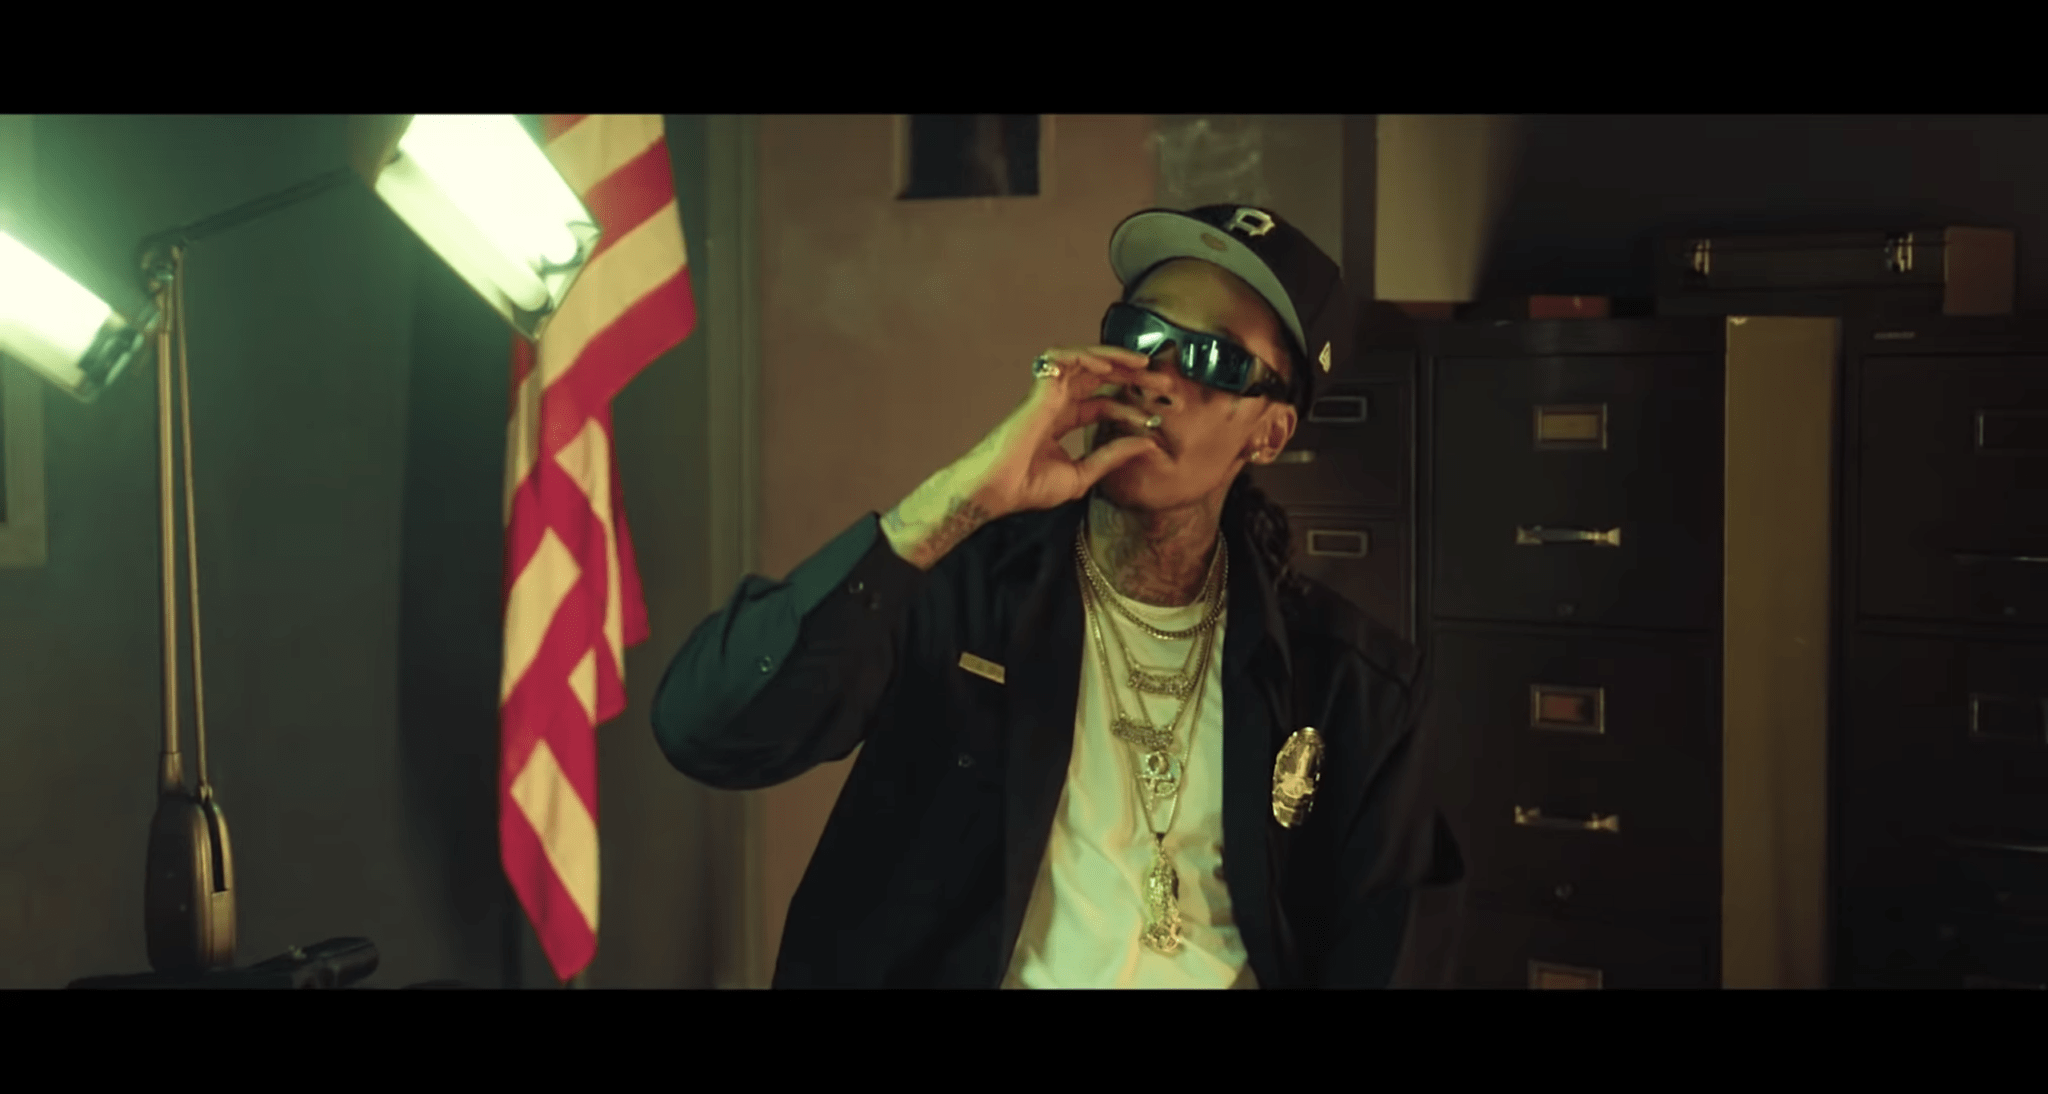 Wiz Khalifa In 911 video with police costume